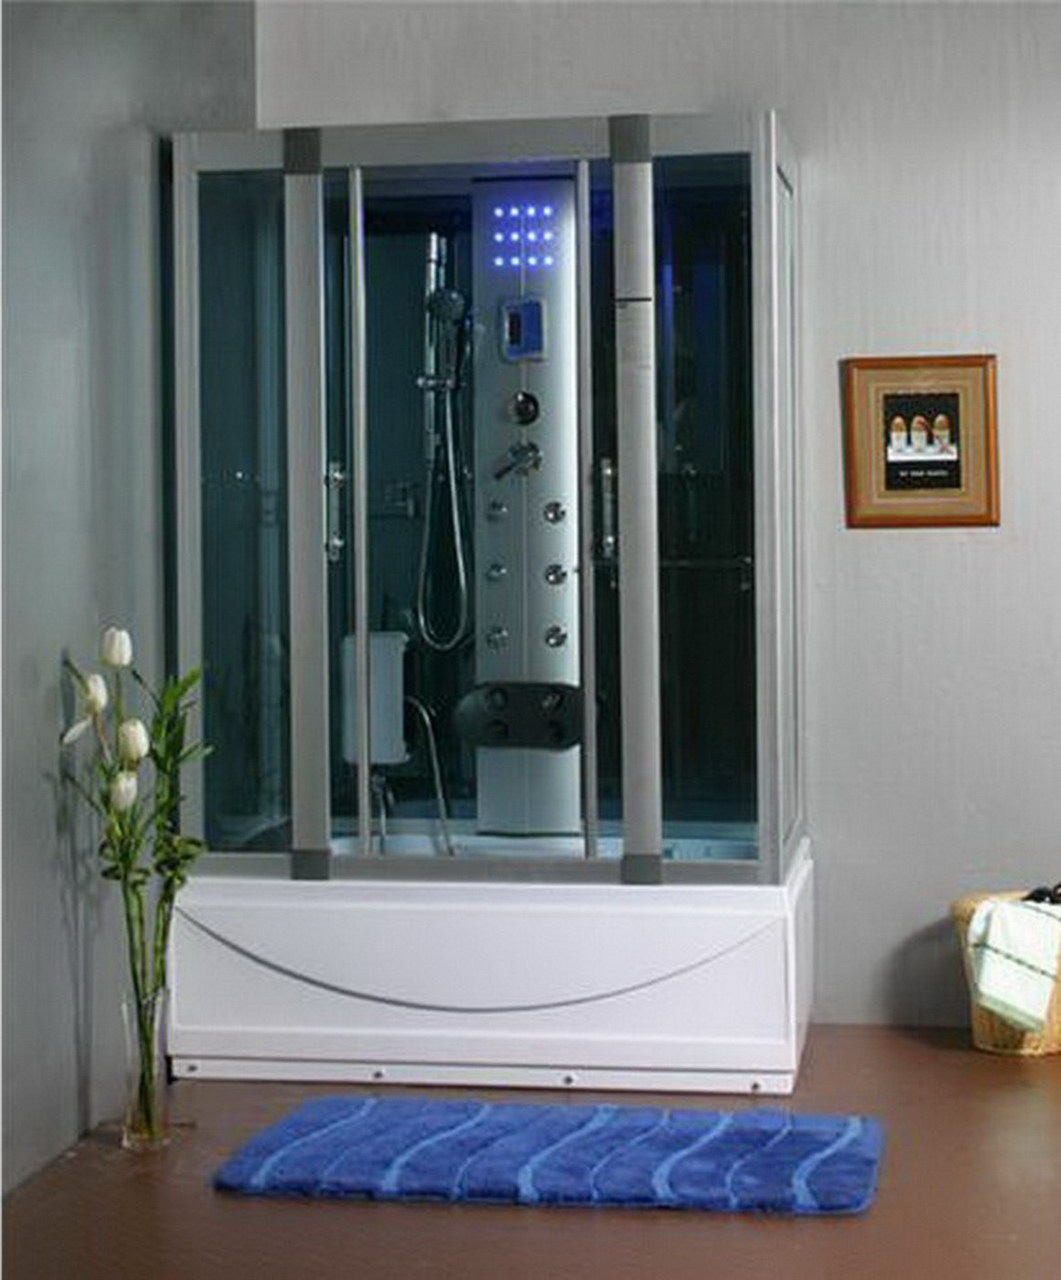 Steam Shower Room With deep Whirlpool.Termostatic. BLUETOOTH. 9004 ...